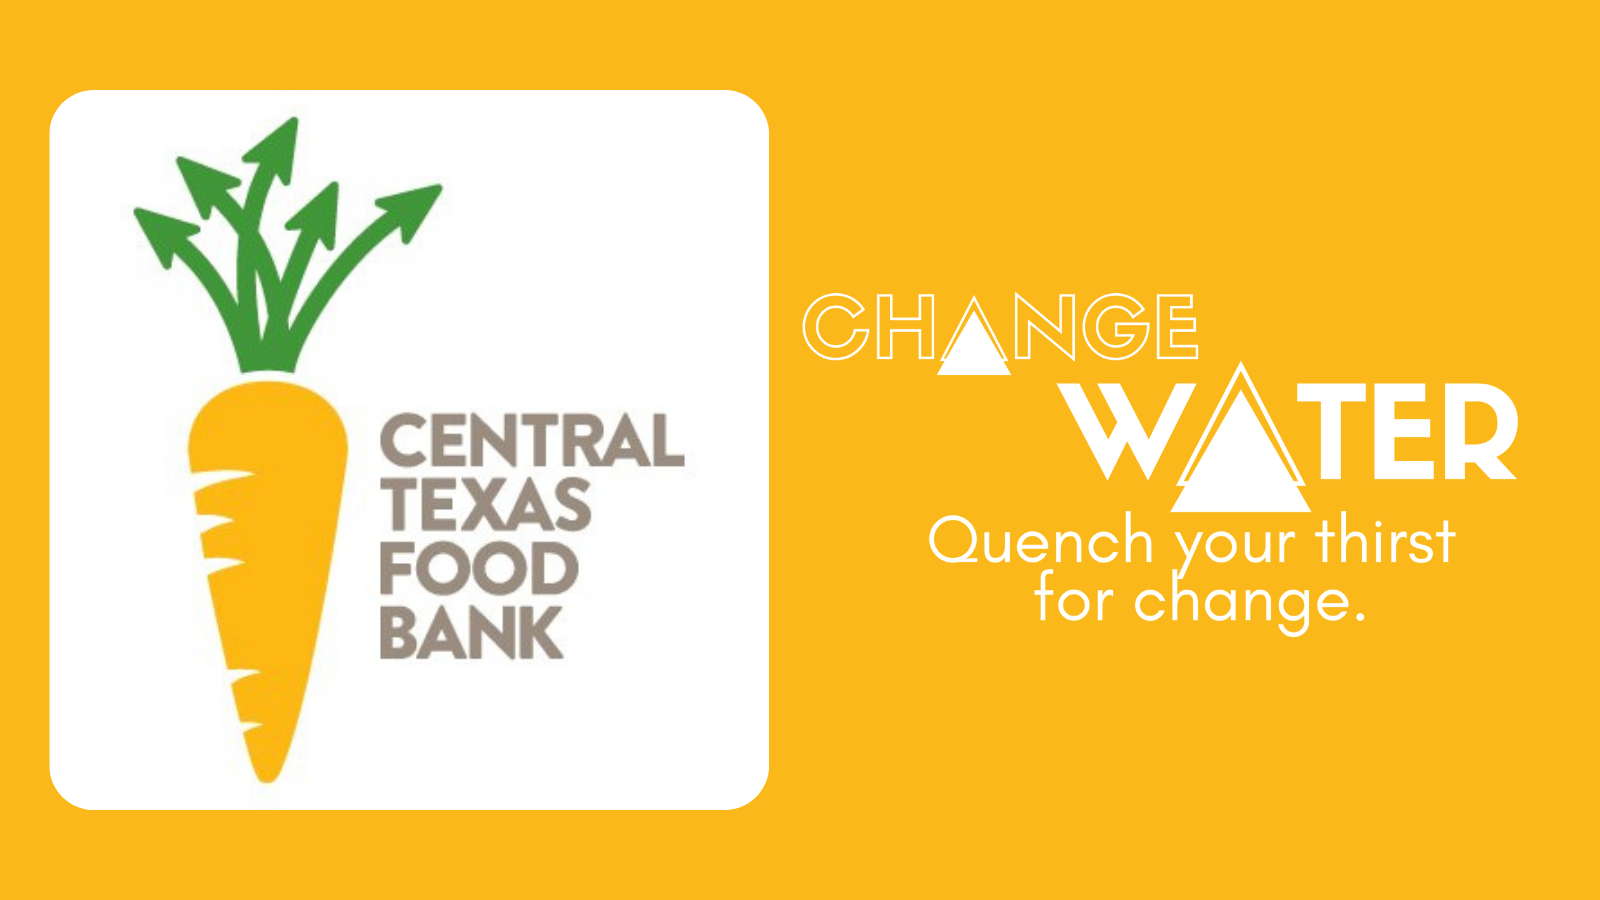 Creating Change After Hurricane Ida with the Central Texas Food Bank